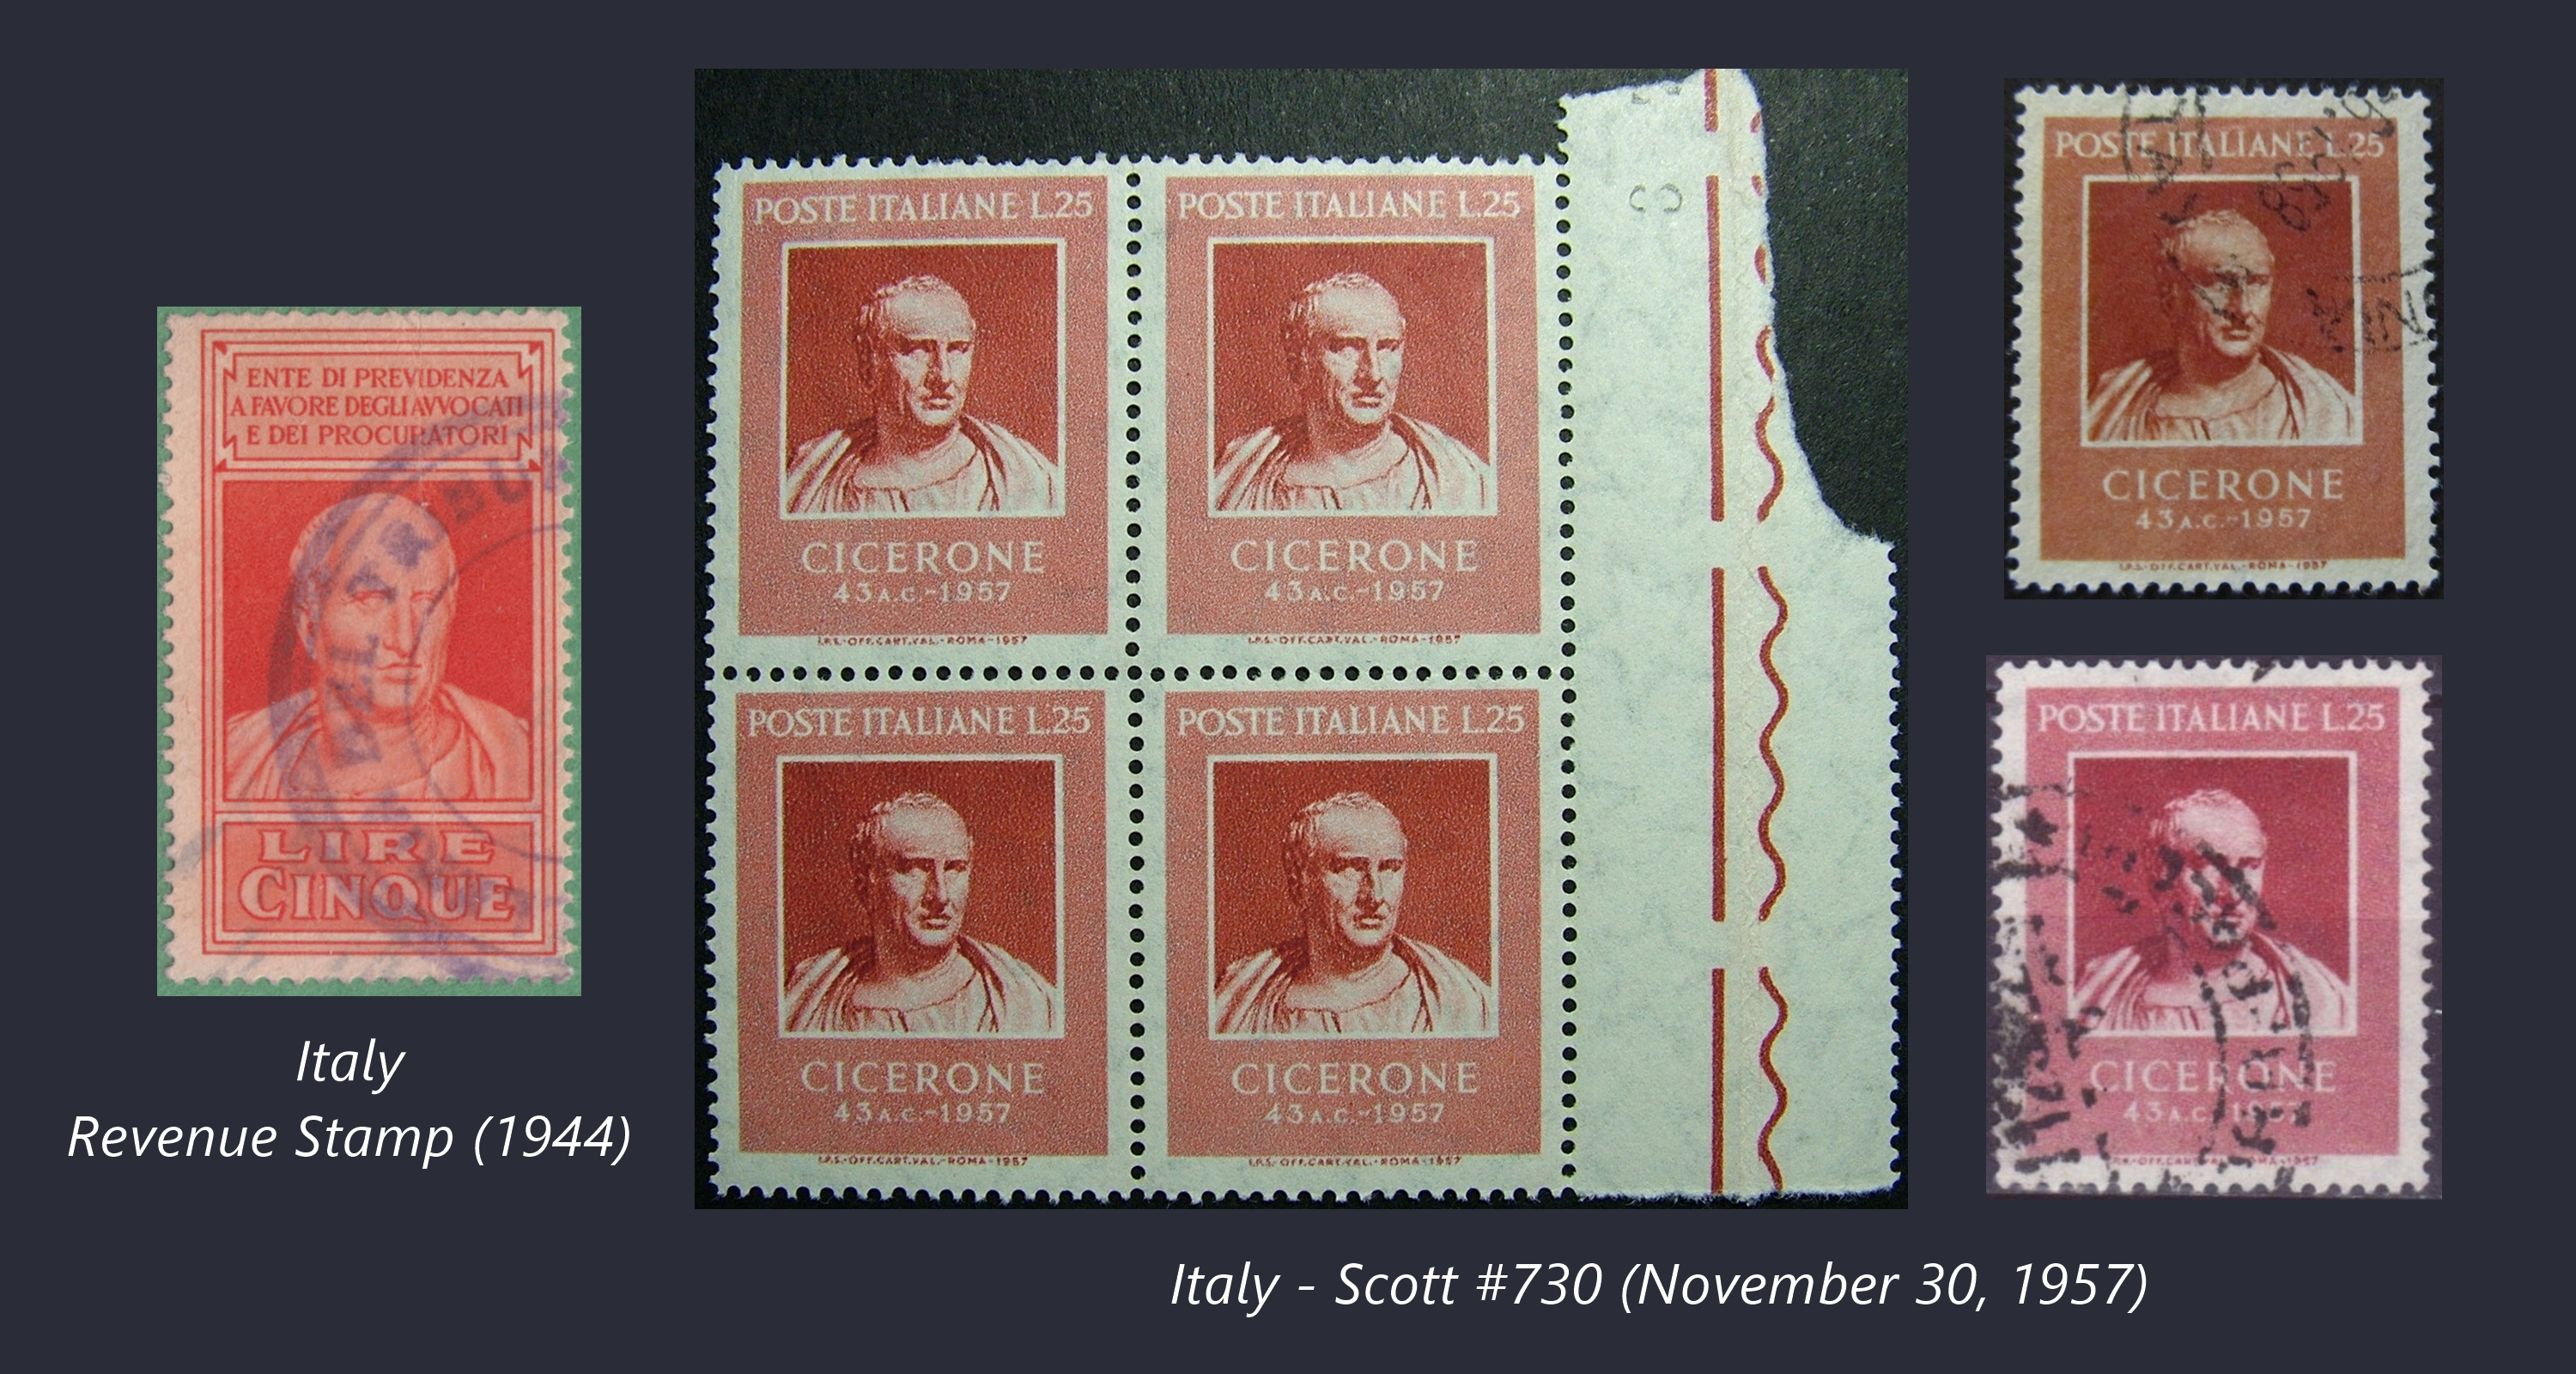 Stamps portraying Cicero